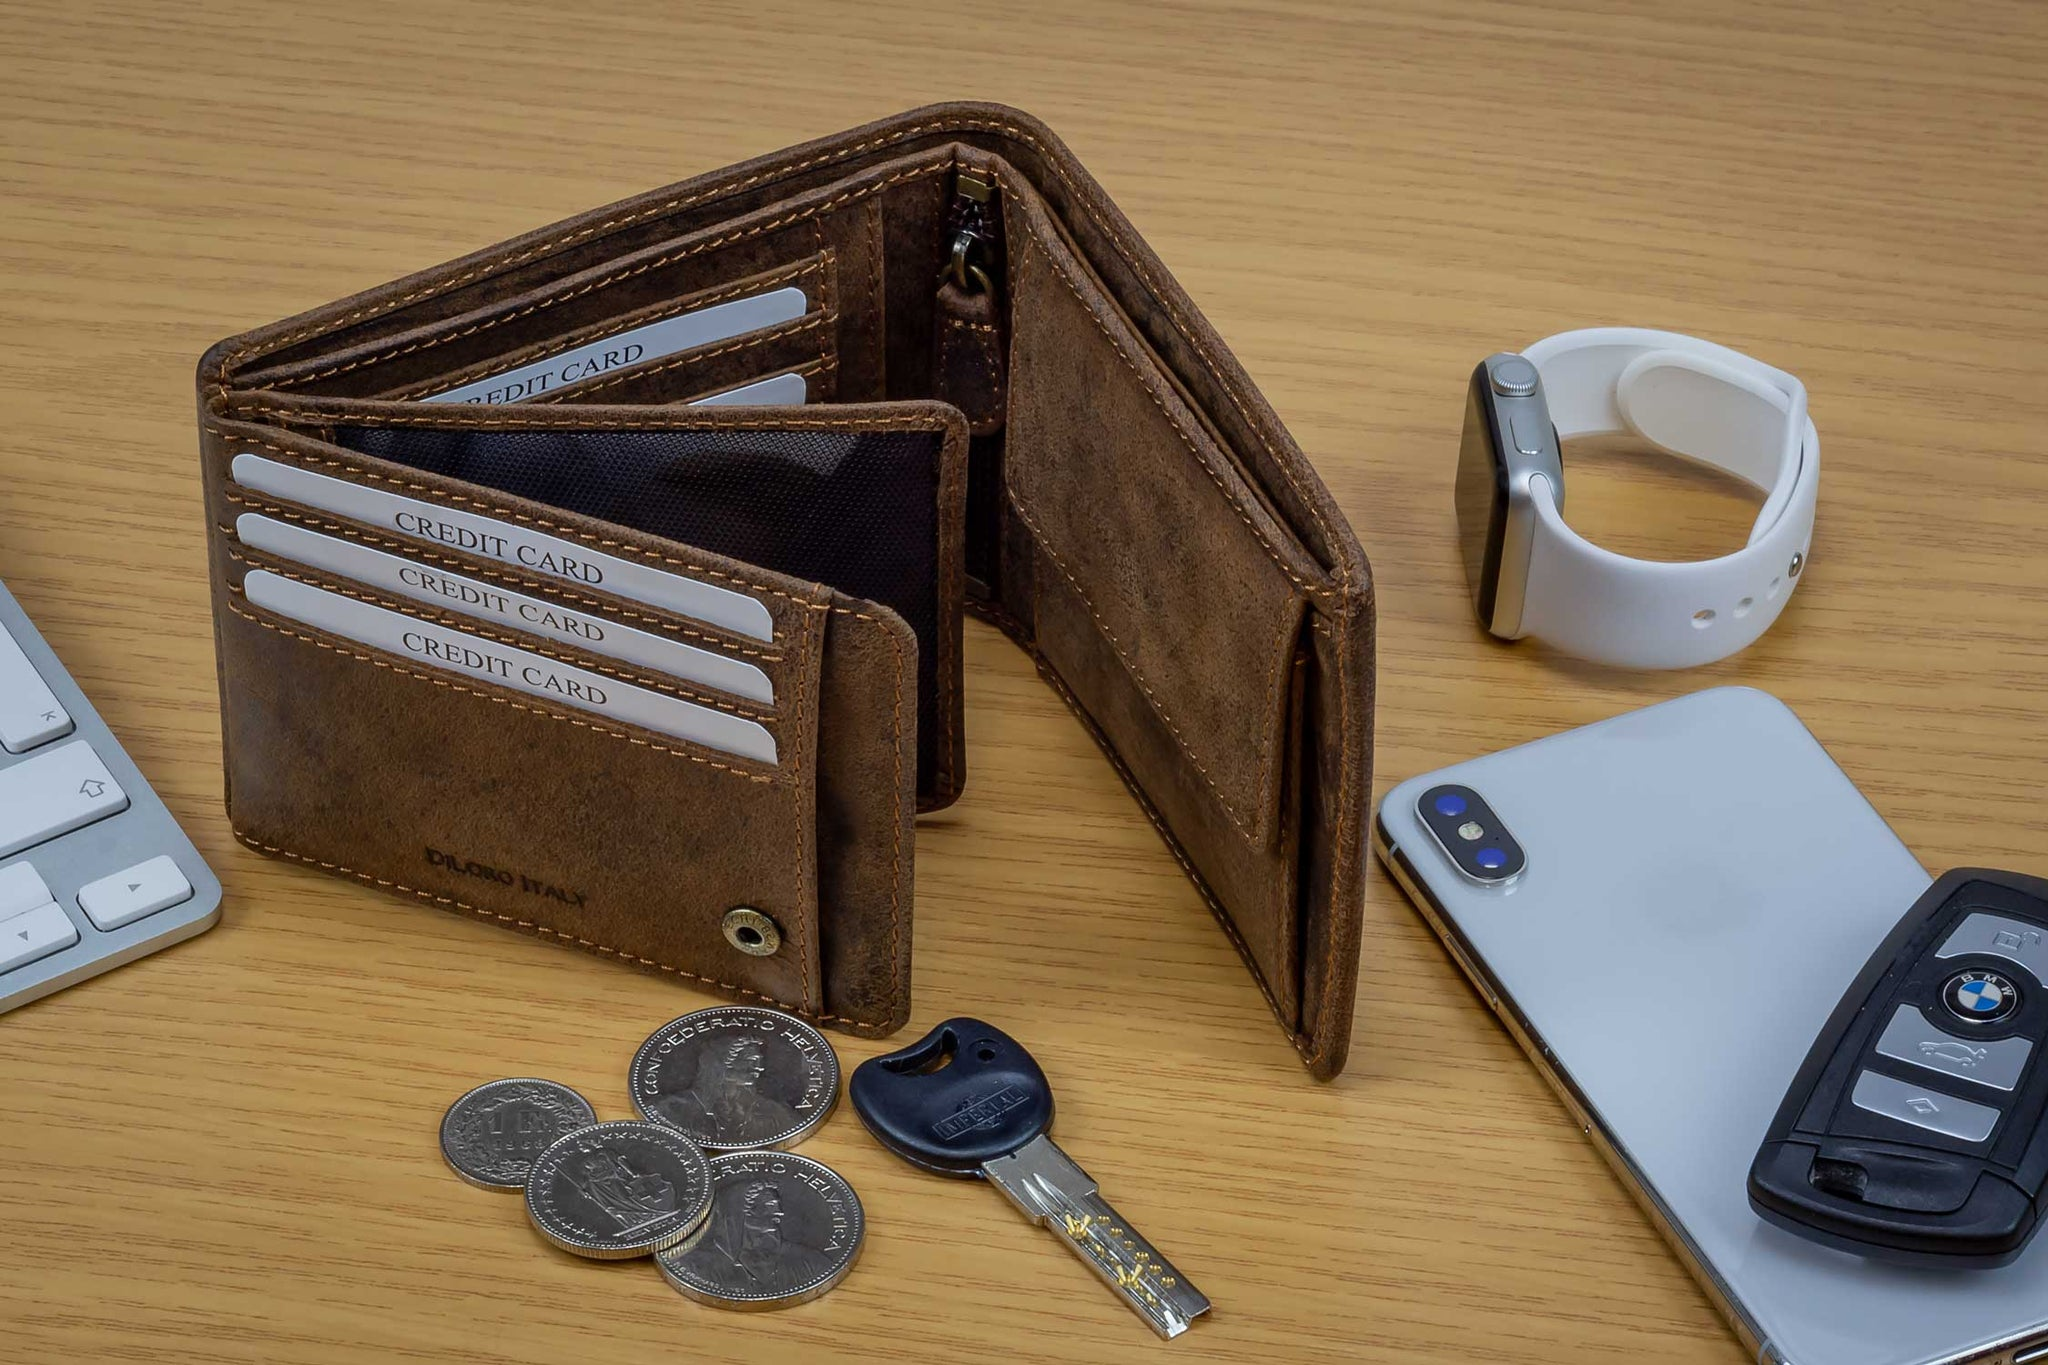 DiLoro Men's Leather Bifold Flip ID Zip Coin Wallet with RFID Protection - Shown in Dark Hunter Brown Ready to Go!